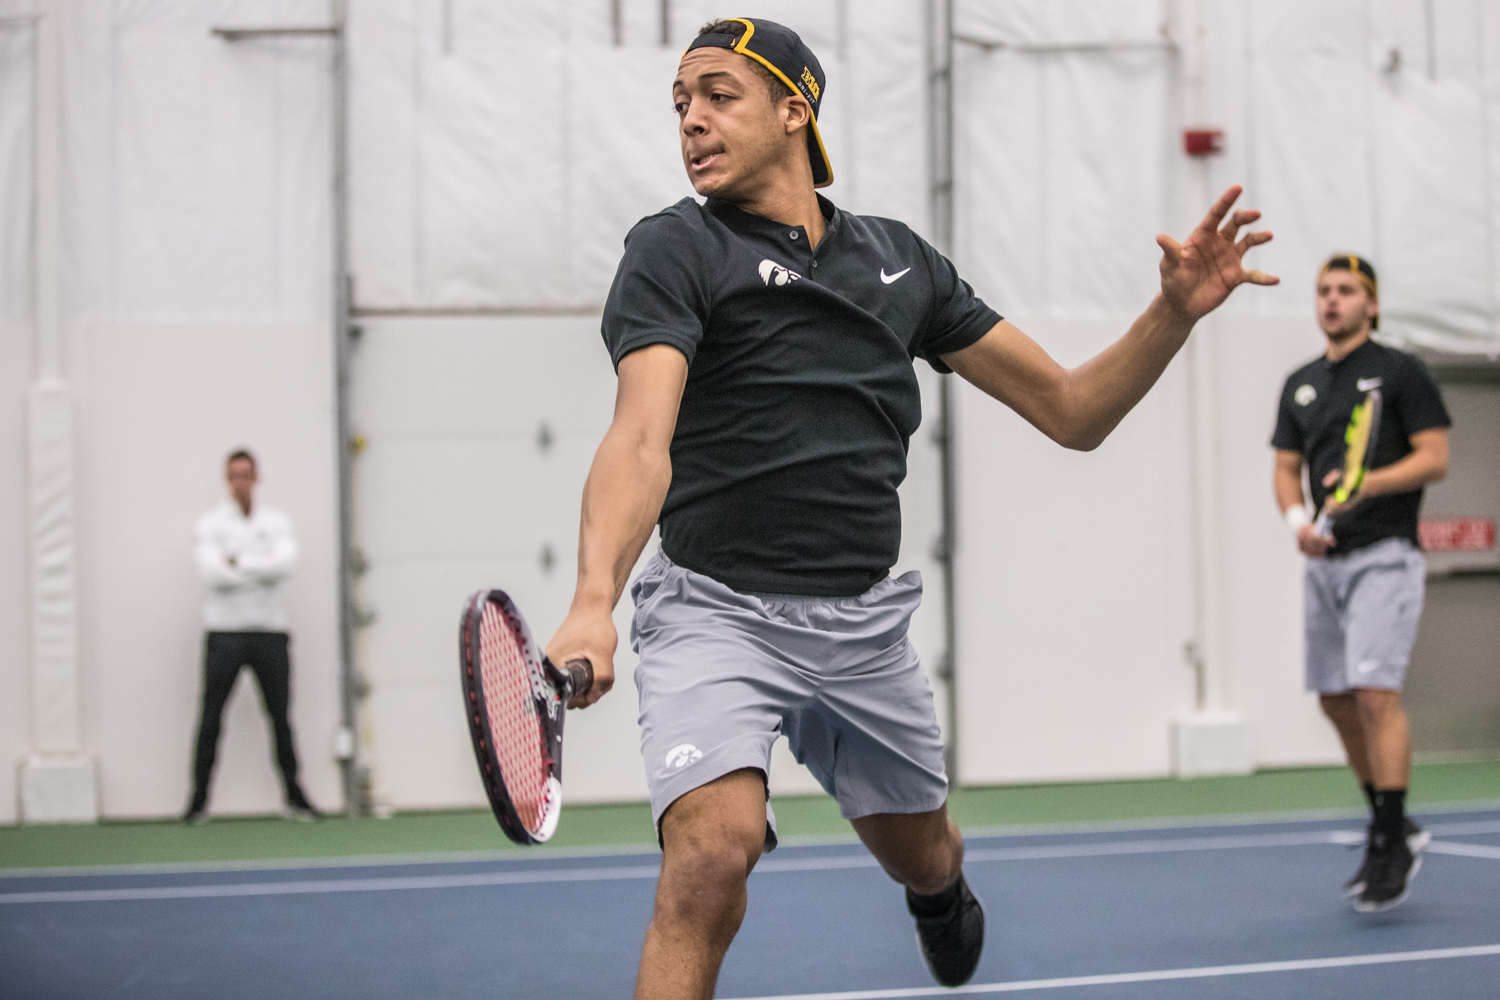 Iowa%27s+Oliver+Okonkwo+hits+a+volley+during+a+men%27s+tennis+match+between+Iowa+and+East+Tennessee+State+on+Friday%2C+January+25%2C+2019.+The+Hawkeyes+defeated+the+Buccaneers%2C+4-3.